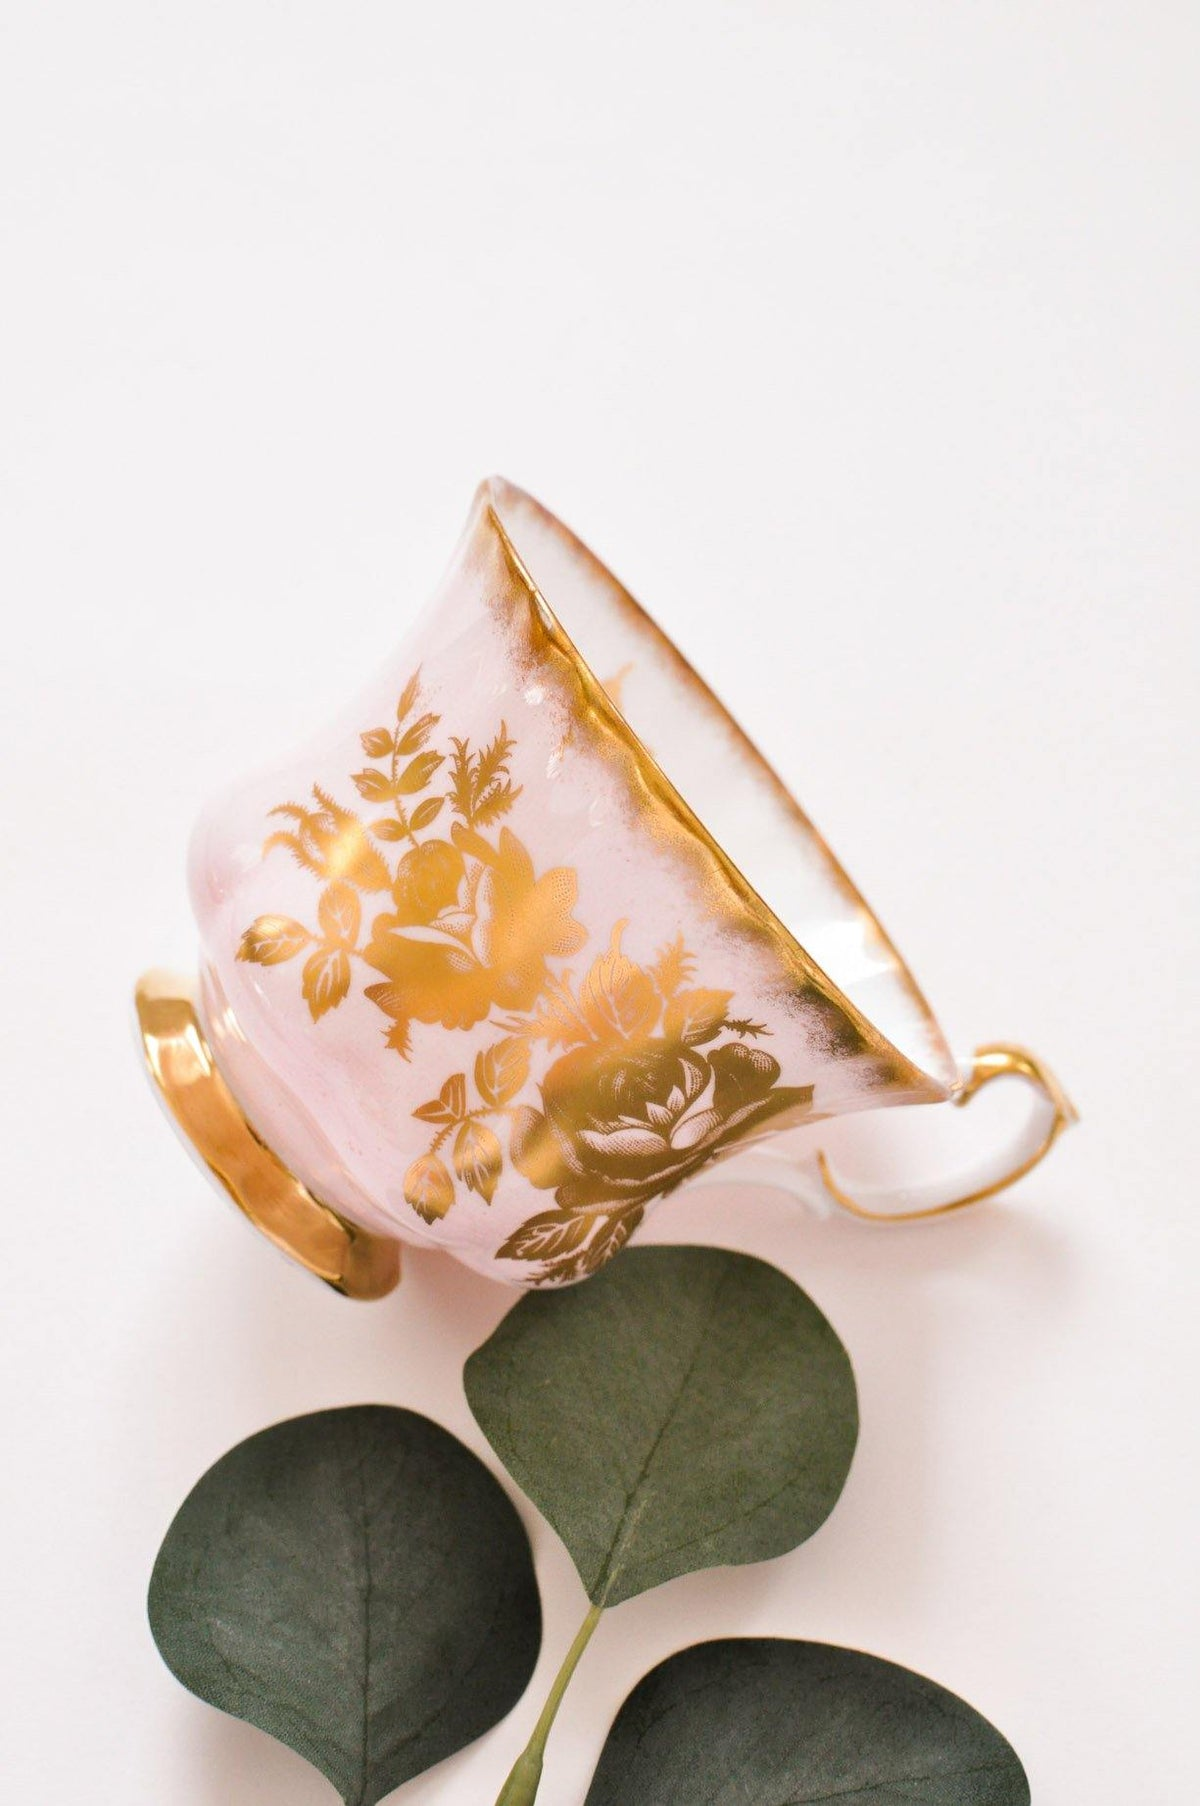 Vintage Floral Teacup from Sweet & Spark.